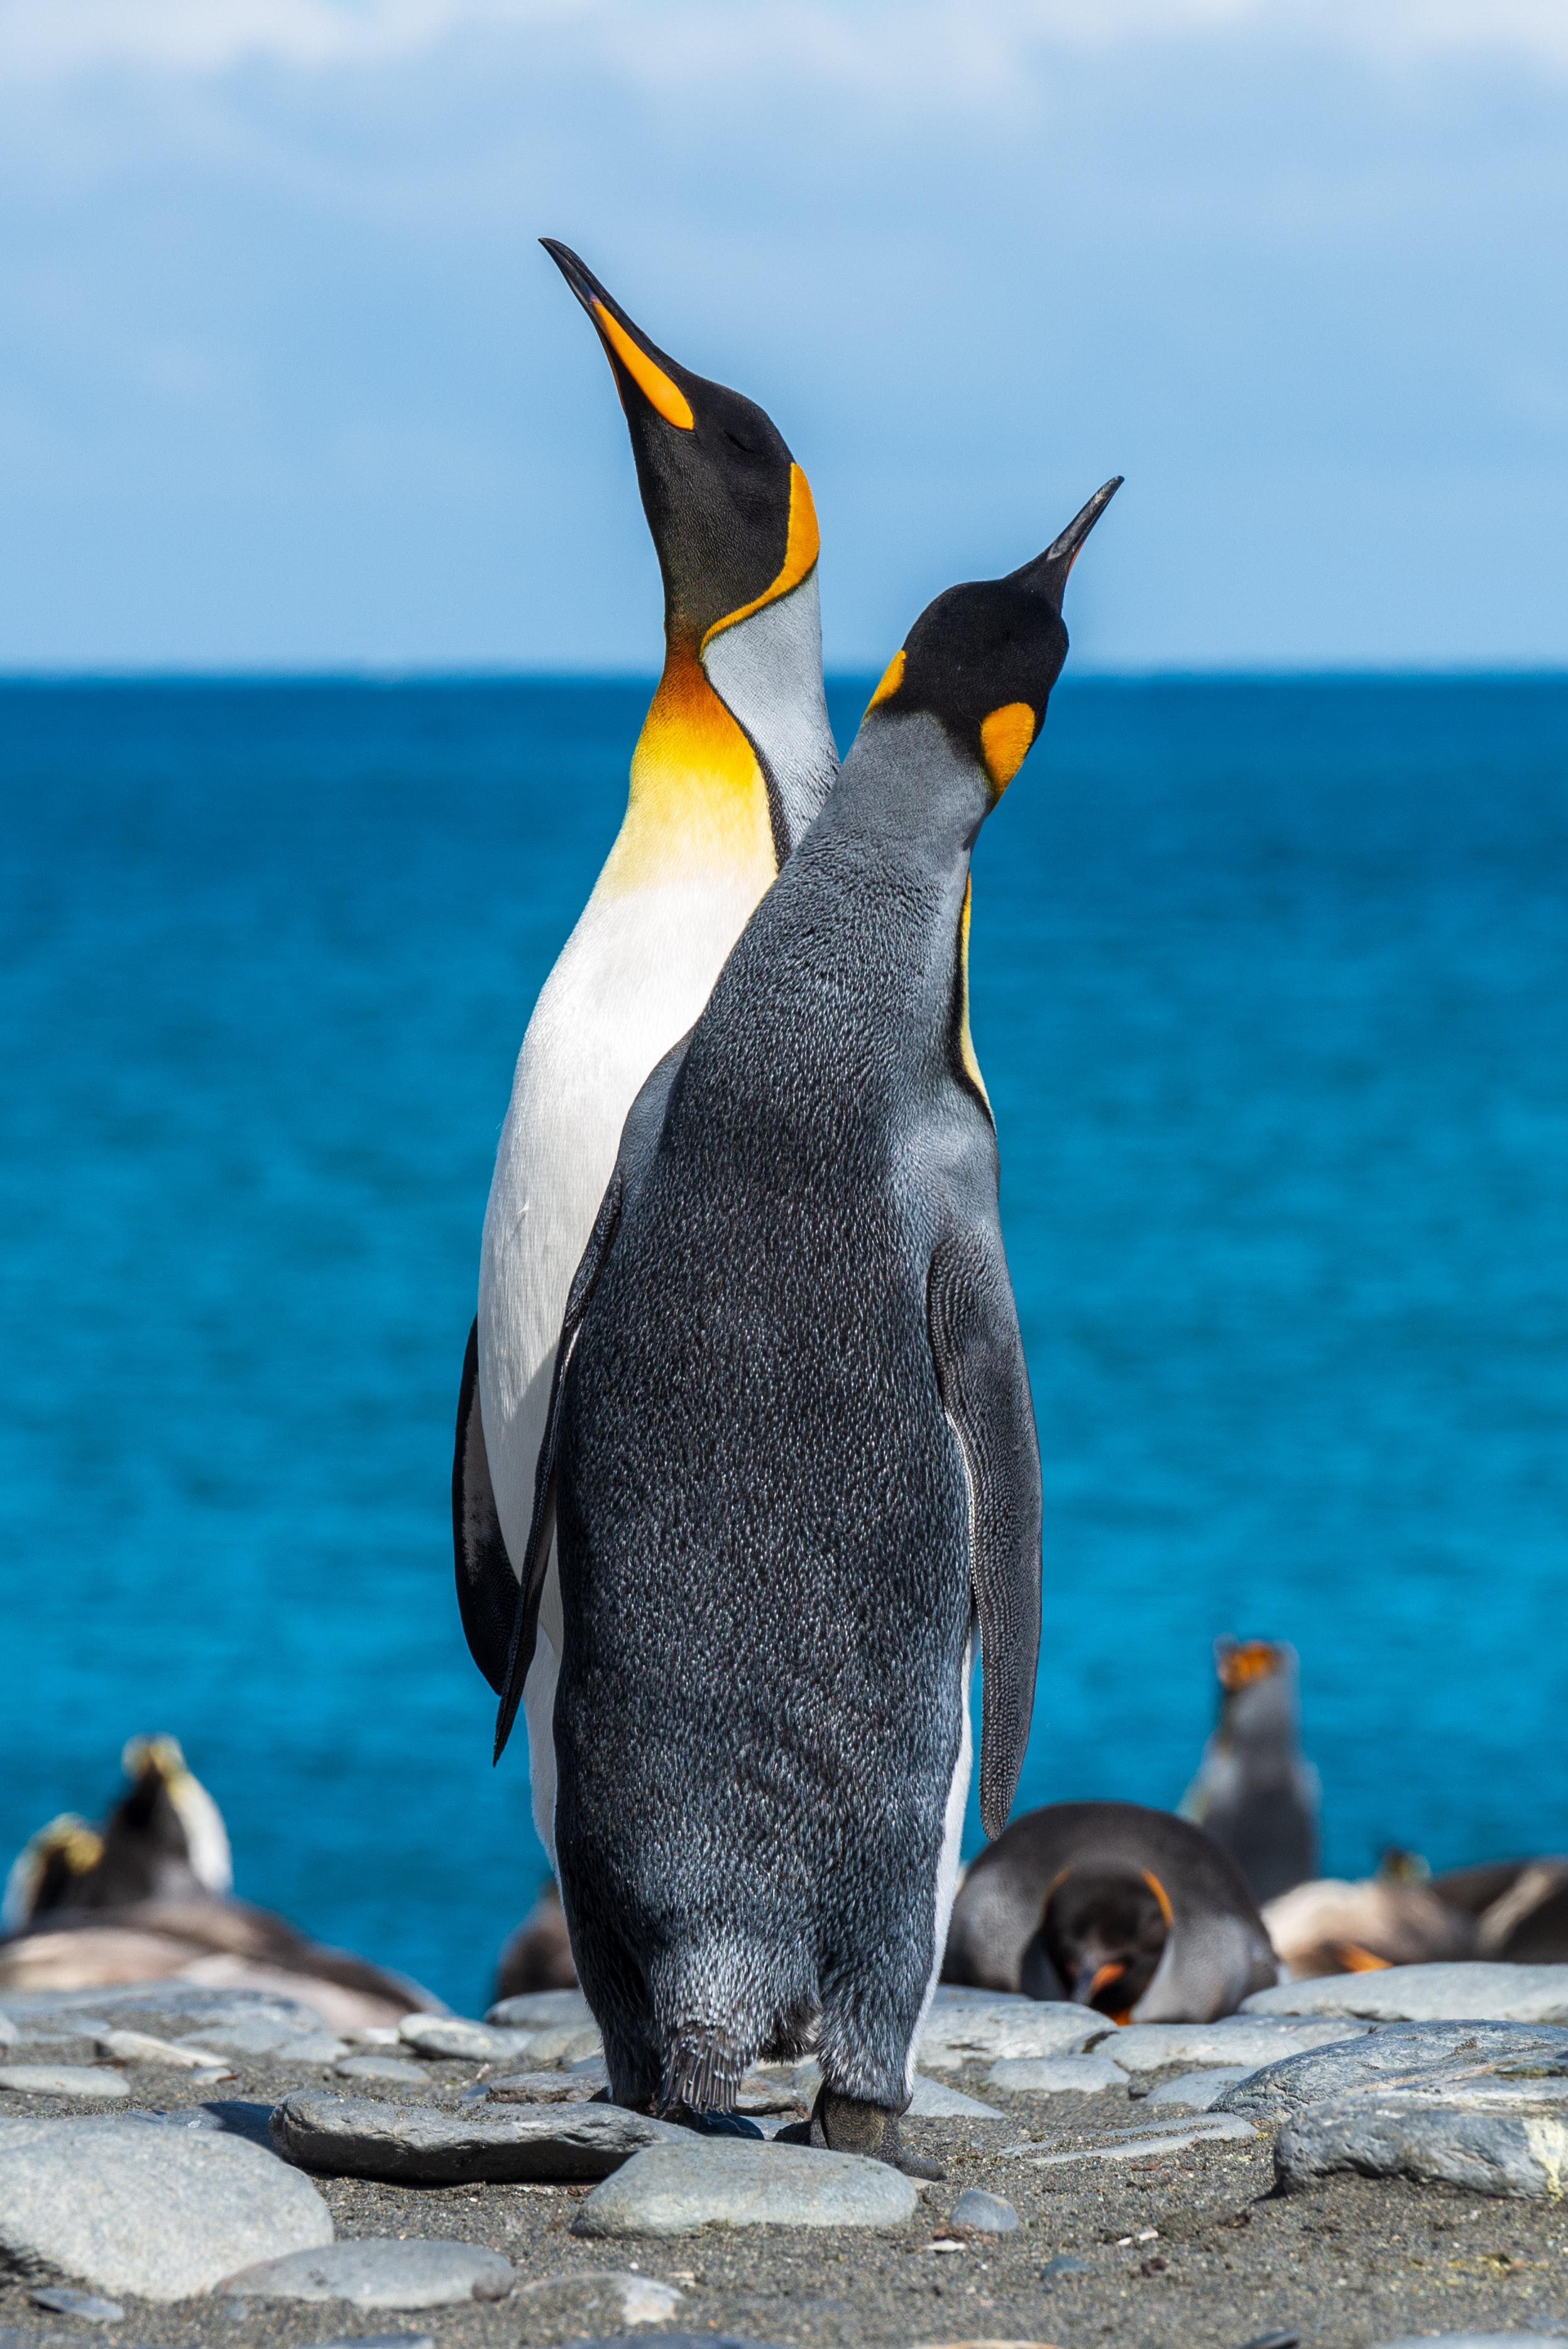 two penguins on seashore during daytime